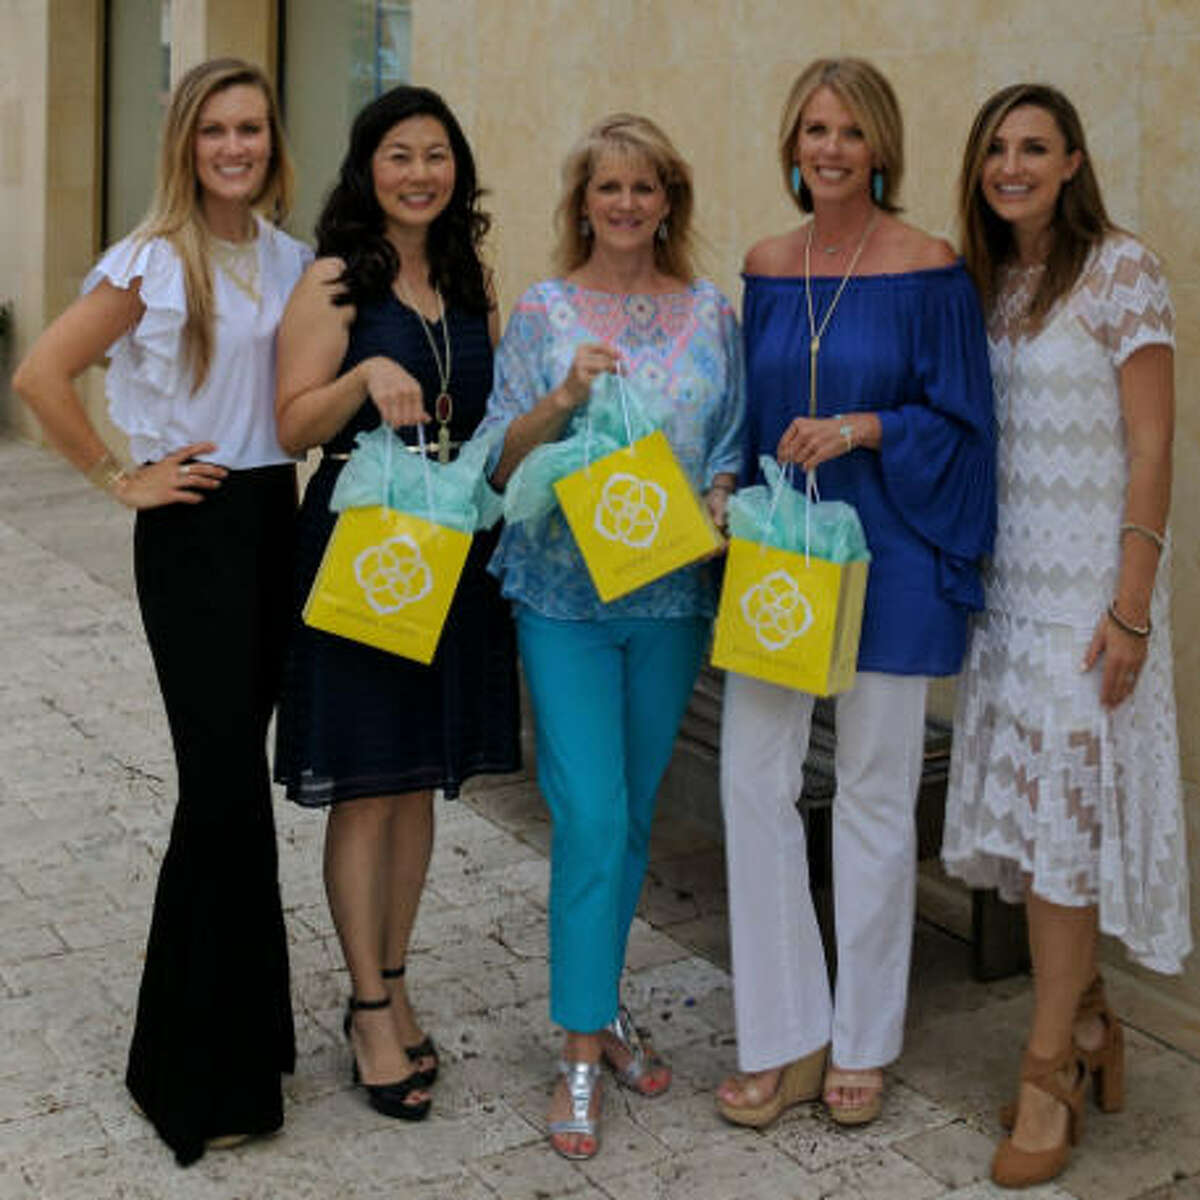 Fort Bend Education Foundation is partnering with Kendra Scott to celebrate the opening of a new store at First Colony Mall. The event will be 5-8 p.m. Aug. 9 for the fall 2017 Launch Party, of the Kendra Scott store, across from Black Walnut Cafe. From left are Kelli Hanson, store manager, Terri Wang, VP Fort Bend Education Foundation; Brenna Cosby, executive director, FBEF; Carol Evans, events coordinator FBEF and Hilary Wetmore; community relations manager, Kendra Scott.